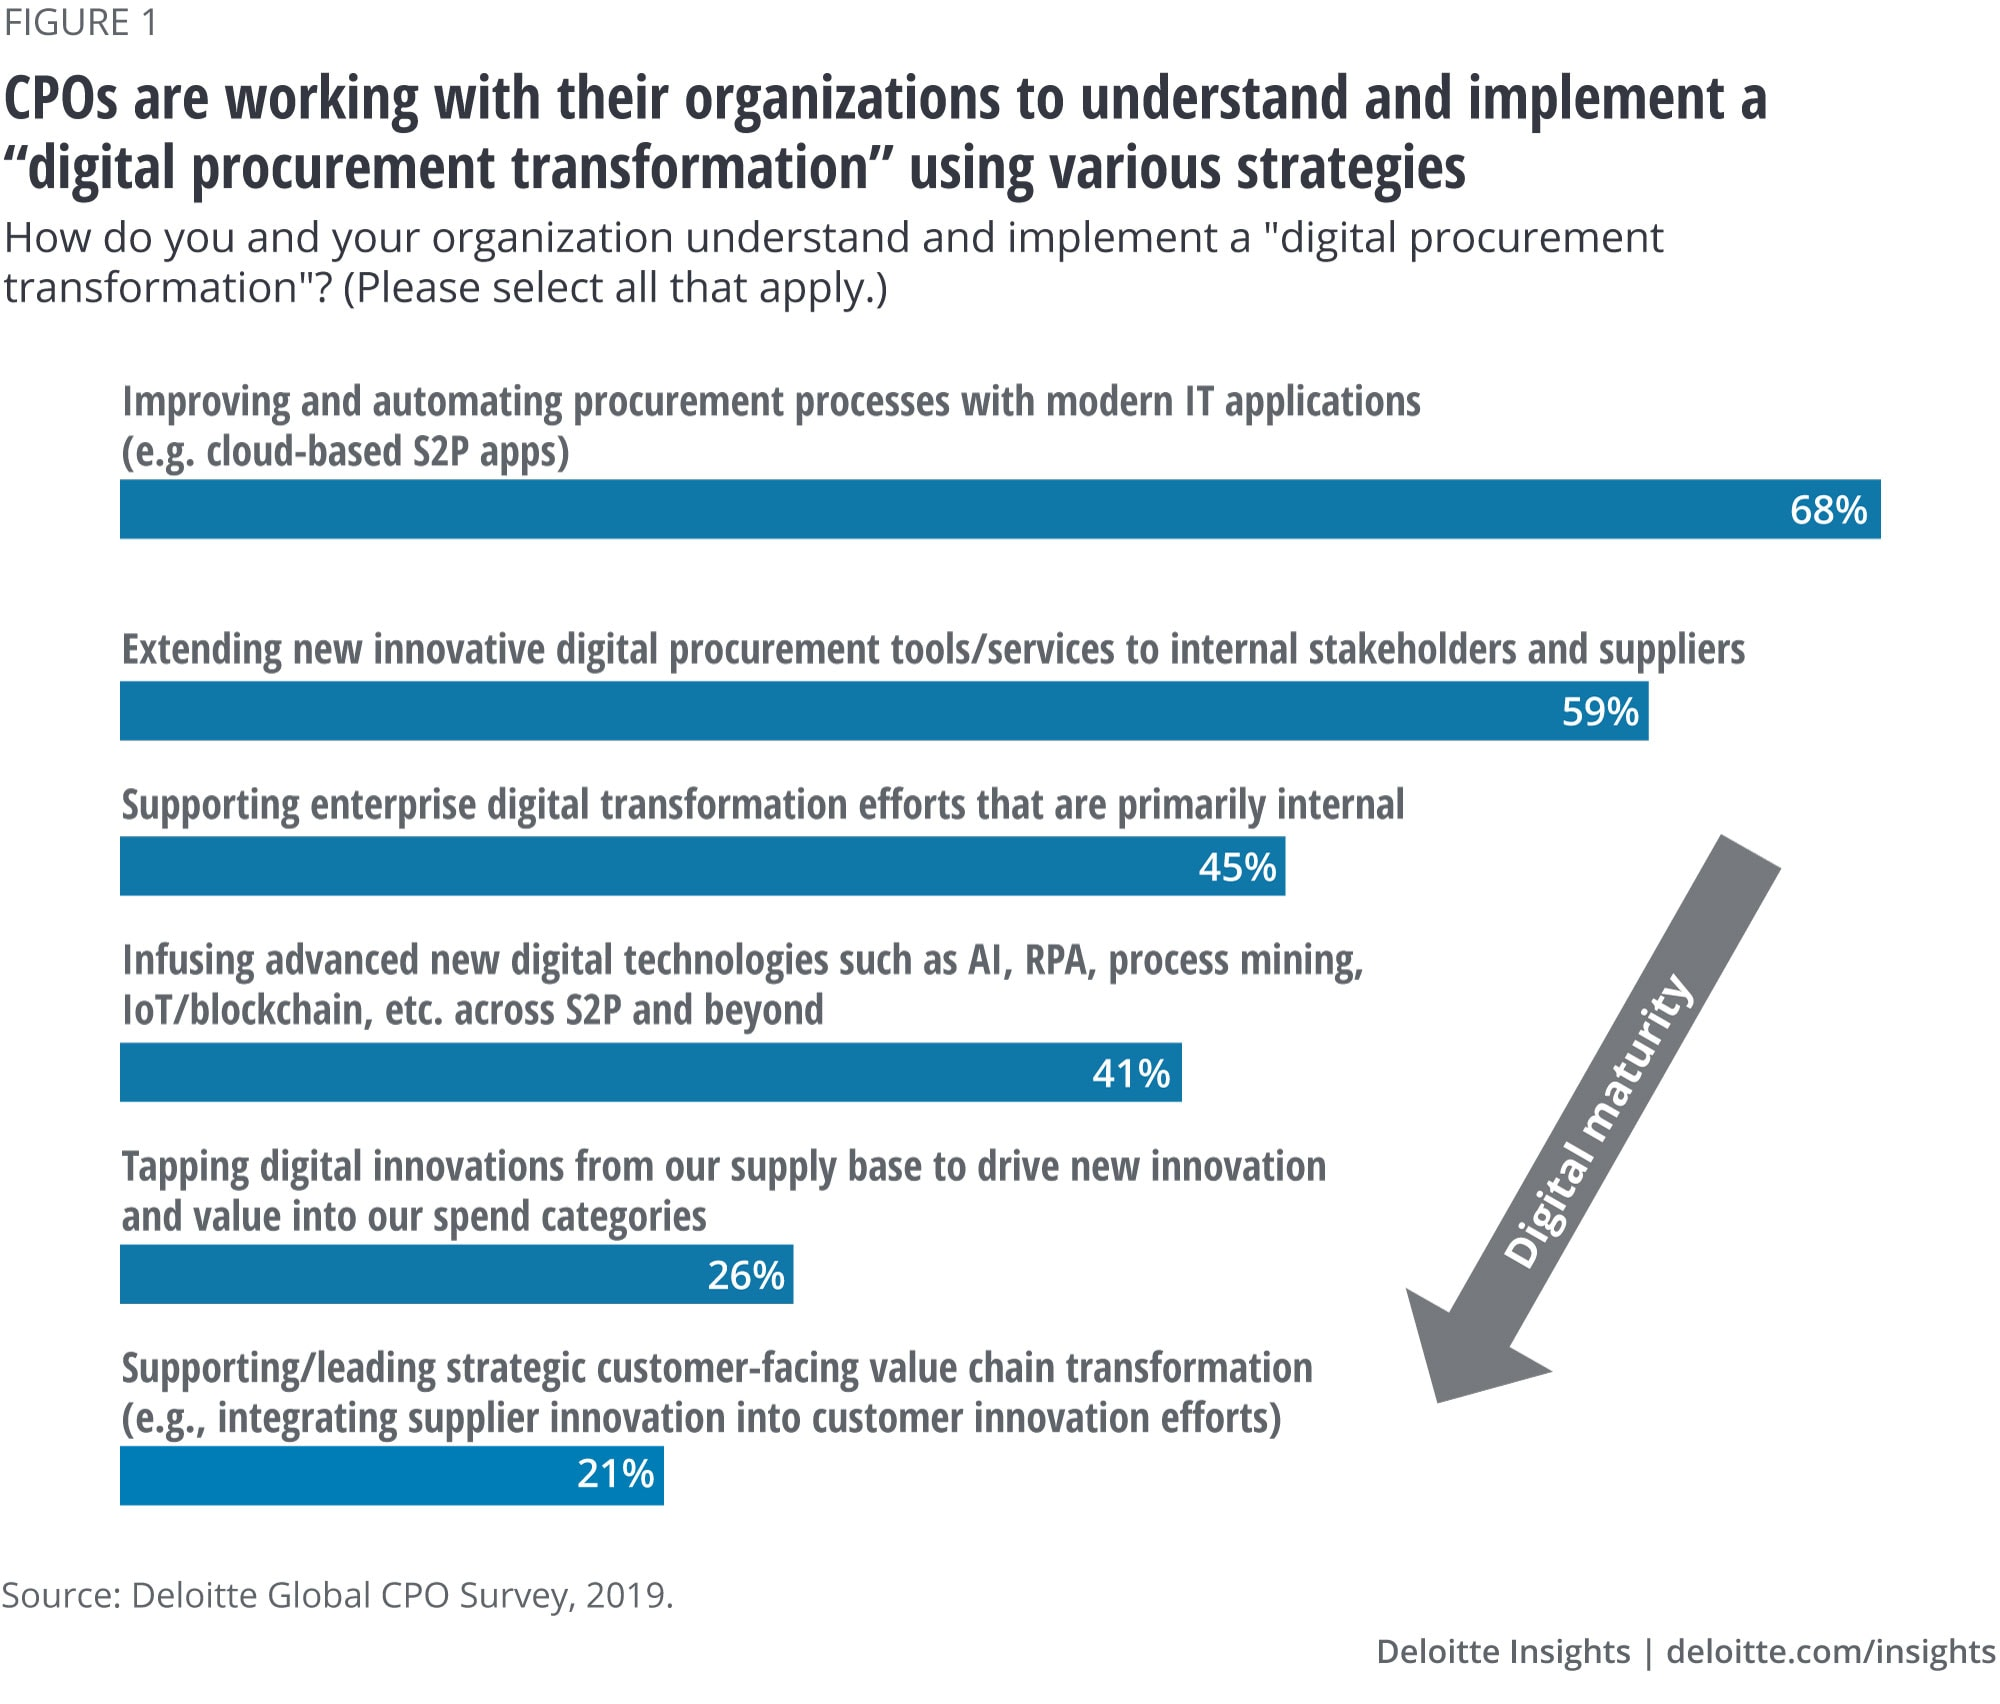 CPOs are working with their organizations to understand and implement a digital procurement transformation using various strategies